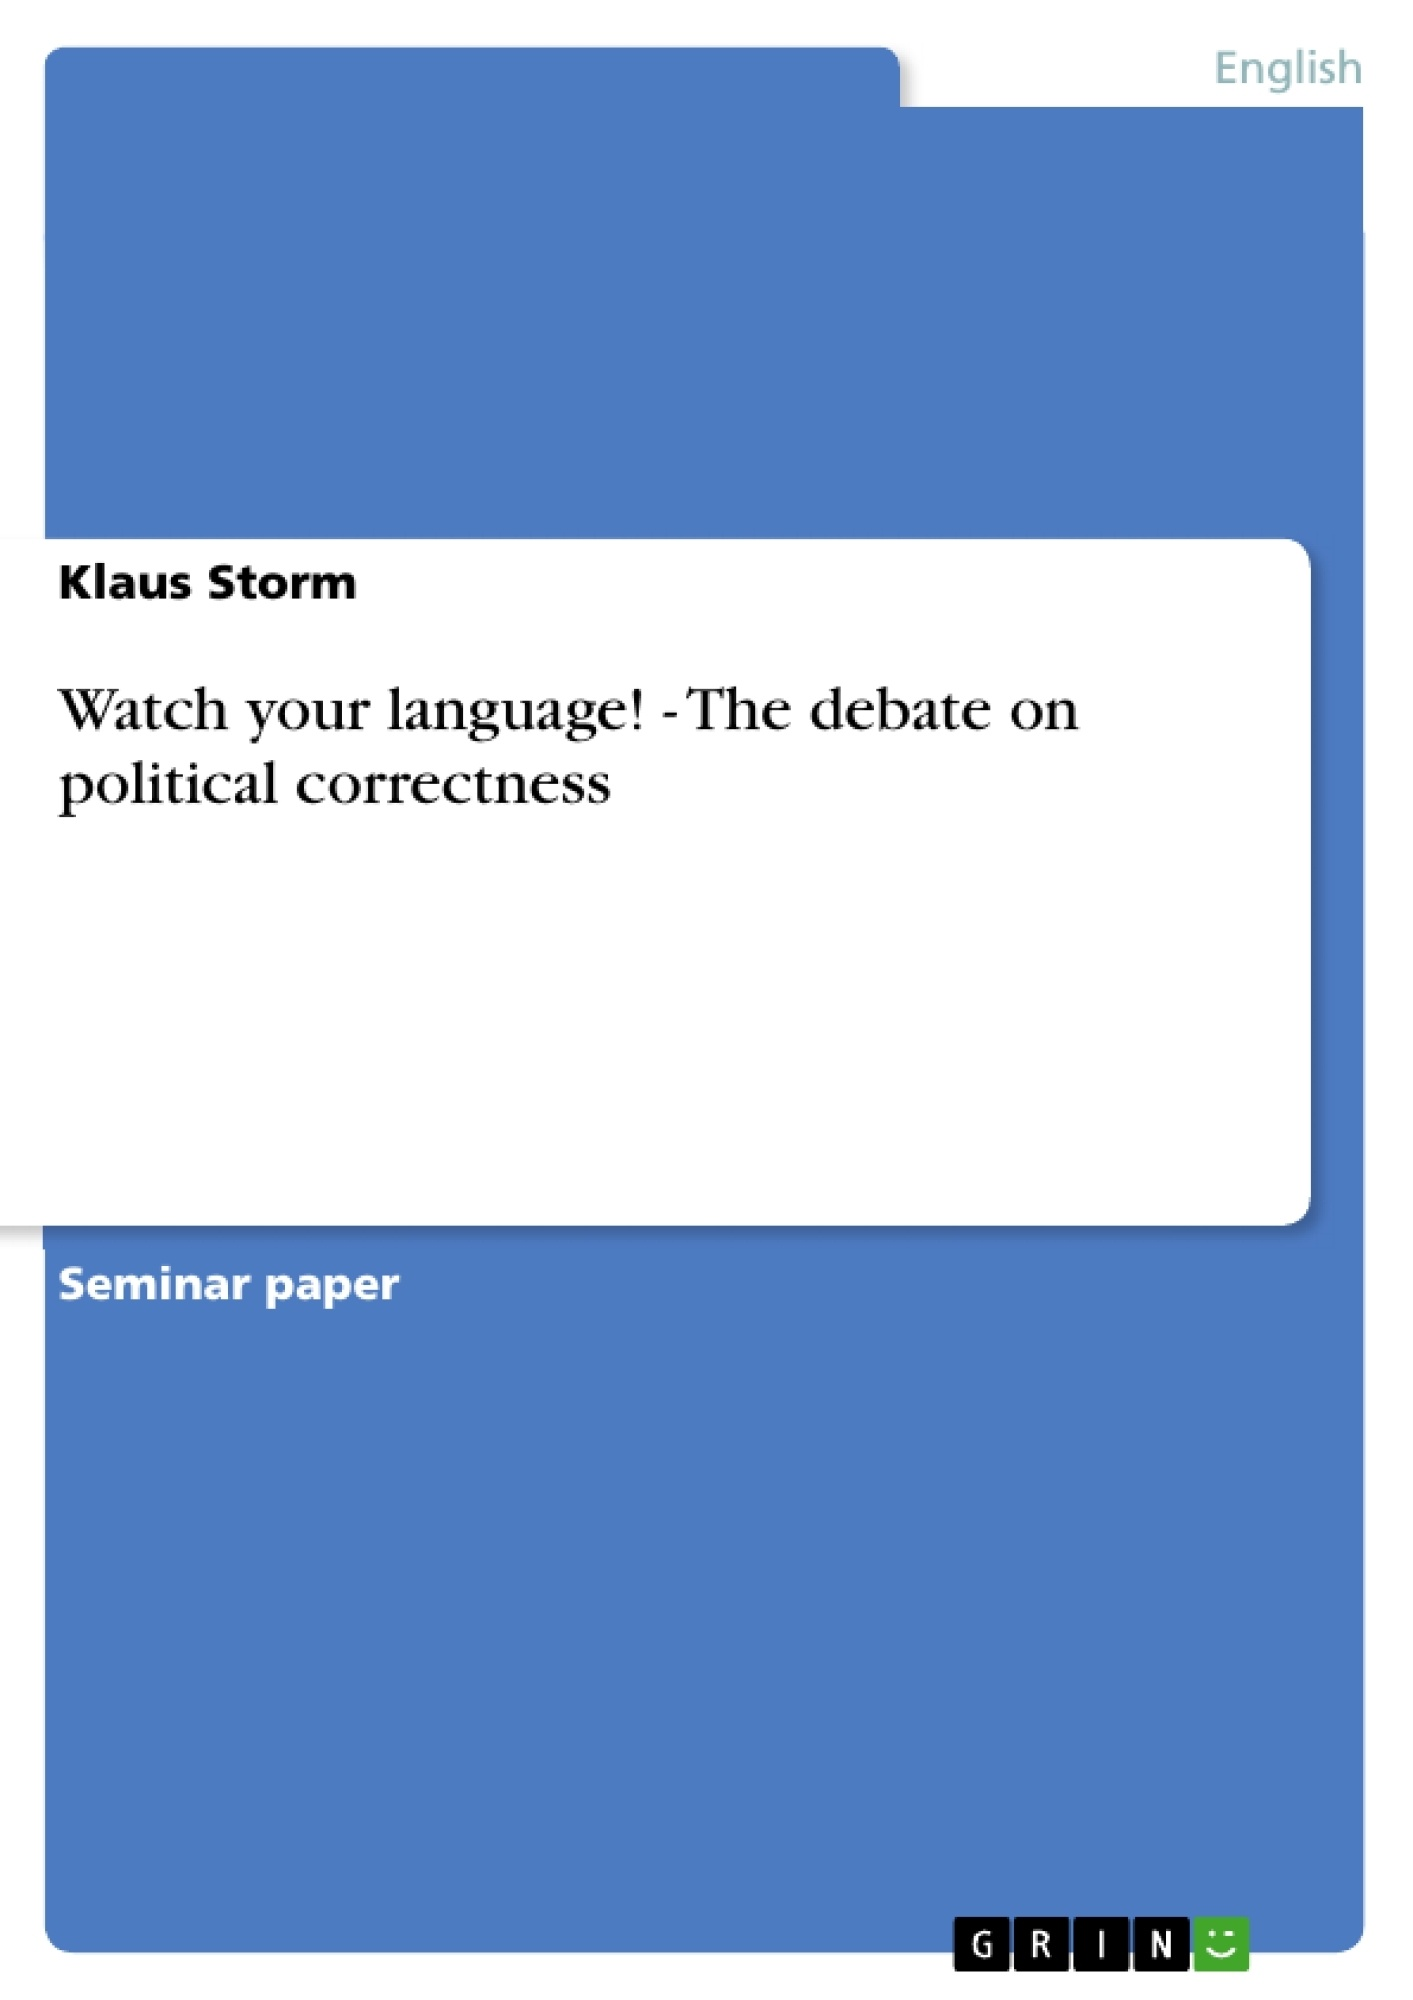 Title: Watch your language! - The debate on political correctness